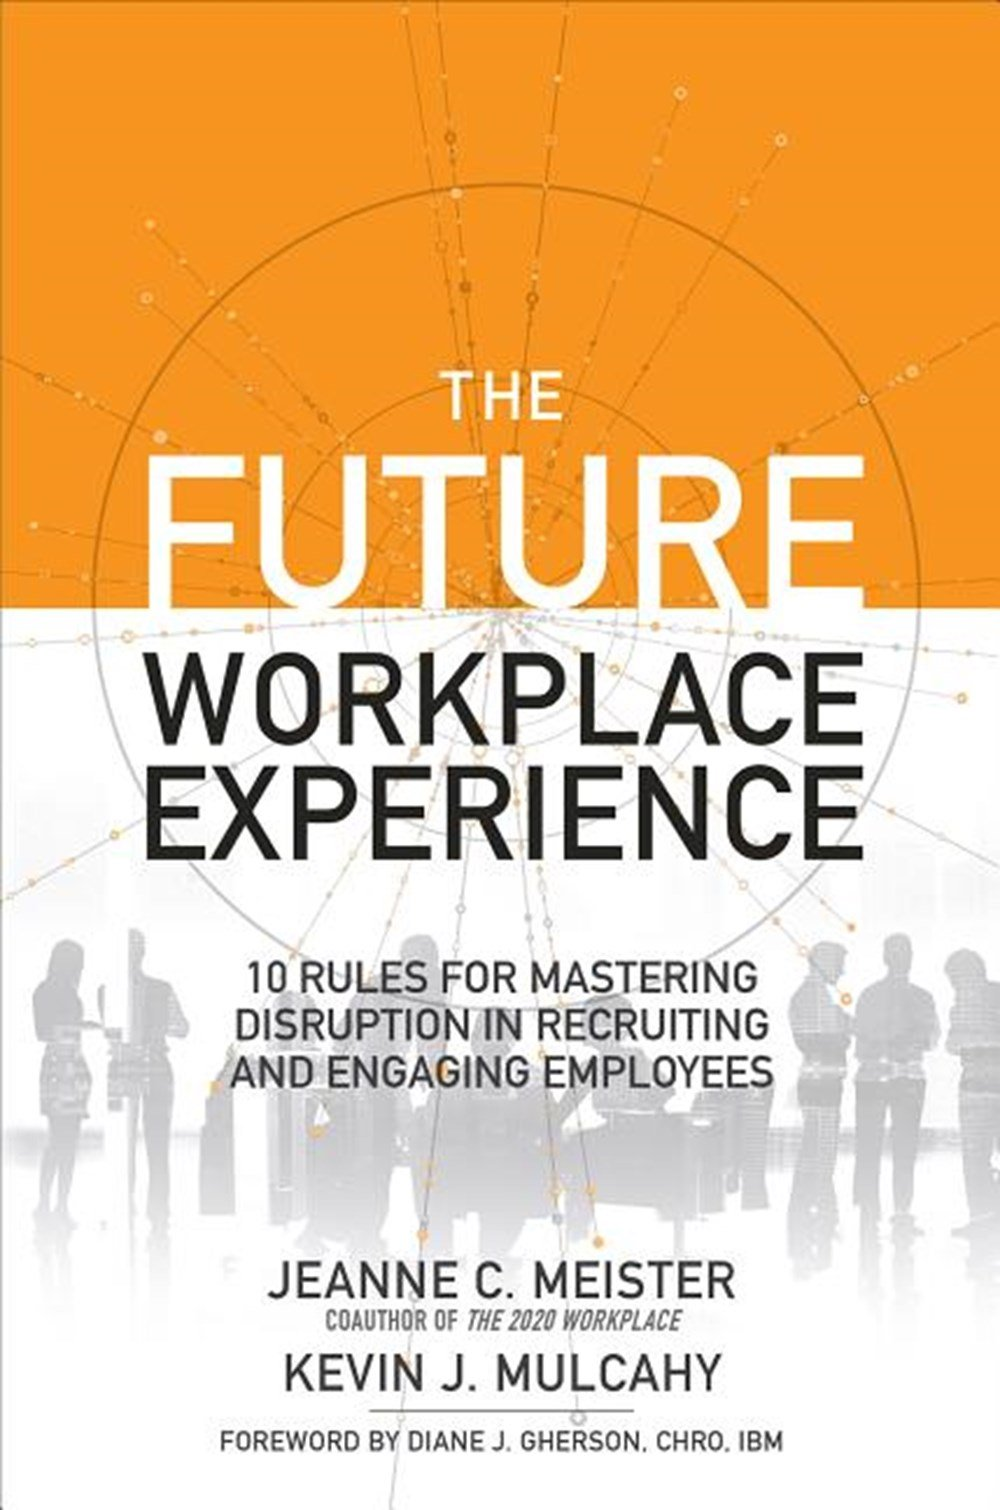 Future Workplace Experience 10 Rules for Mastering Disruption in Recruiting and Engaging Employees